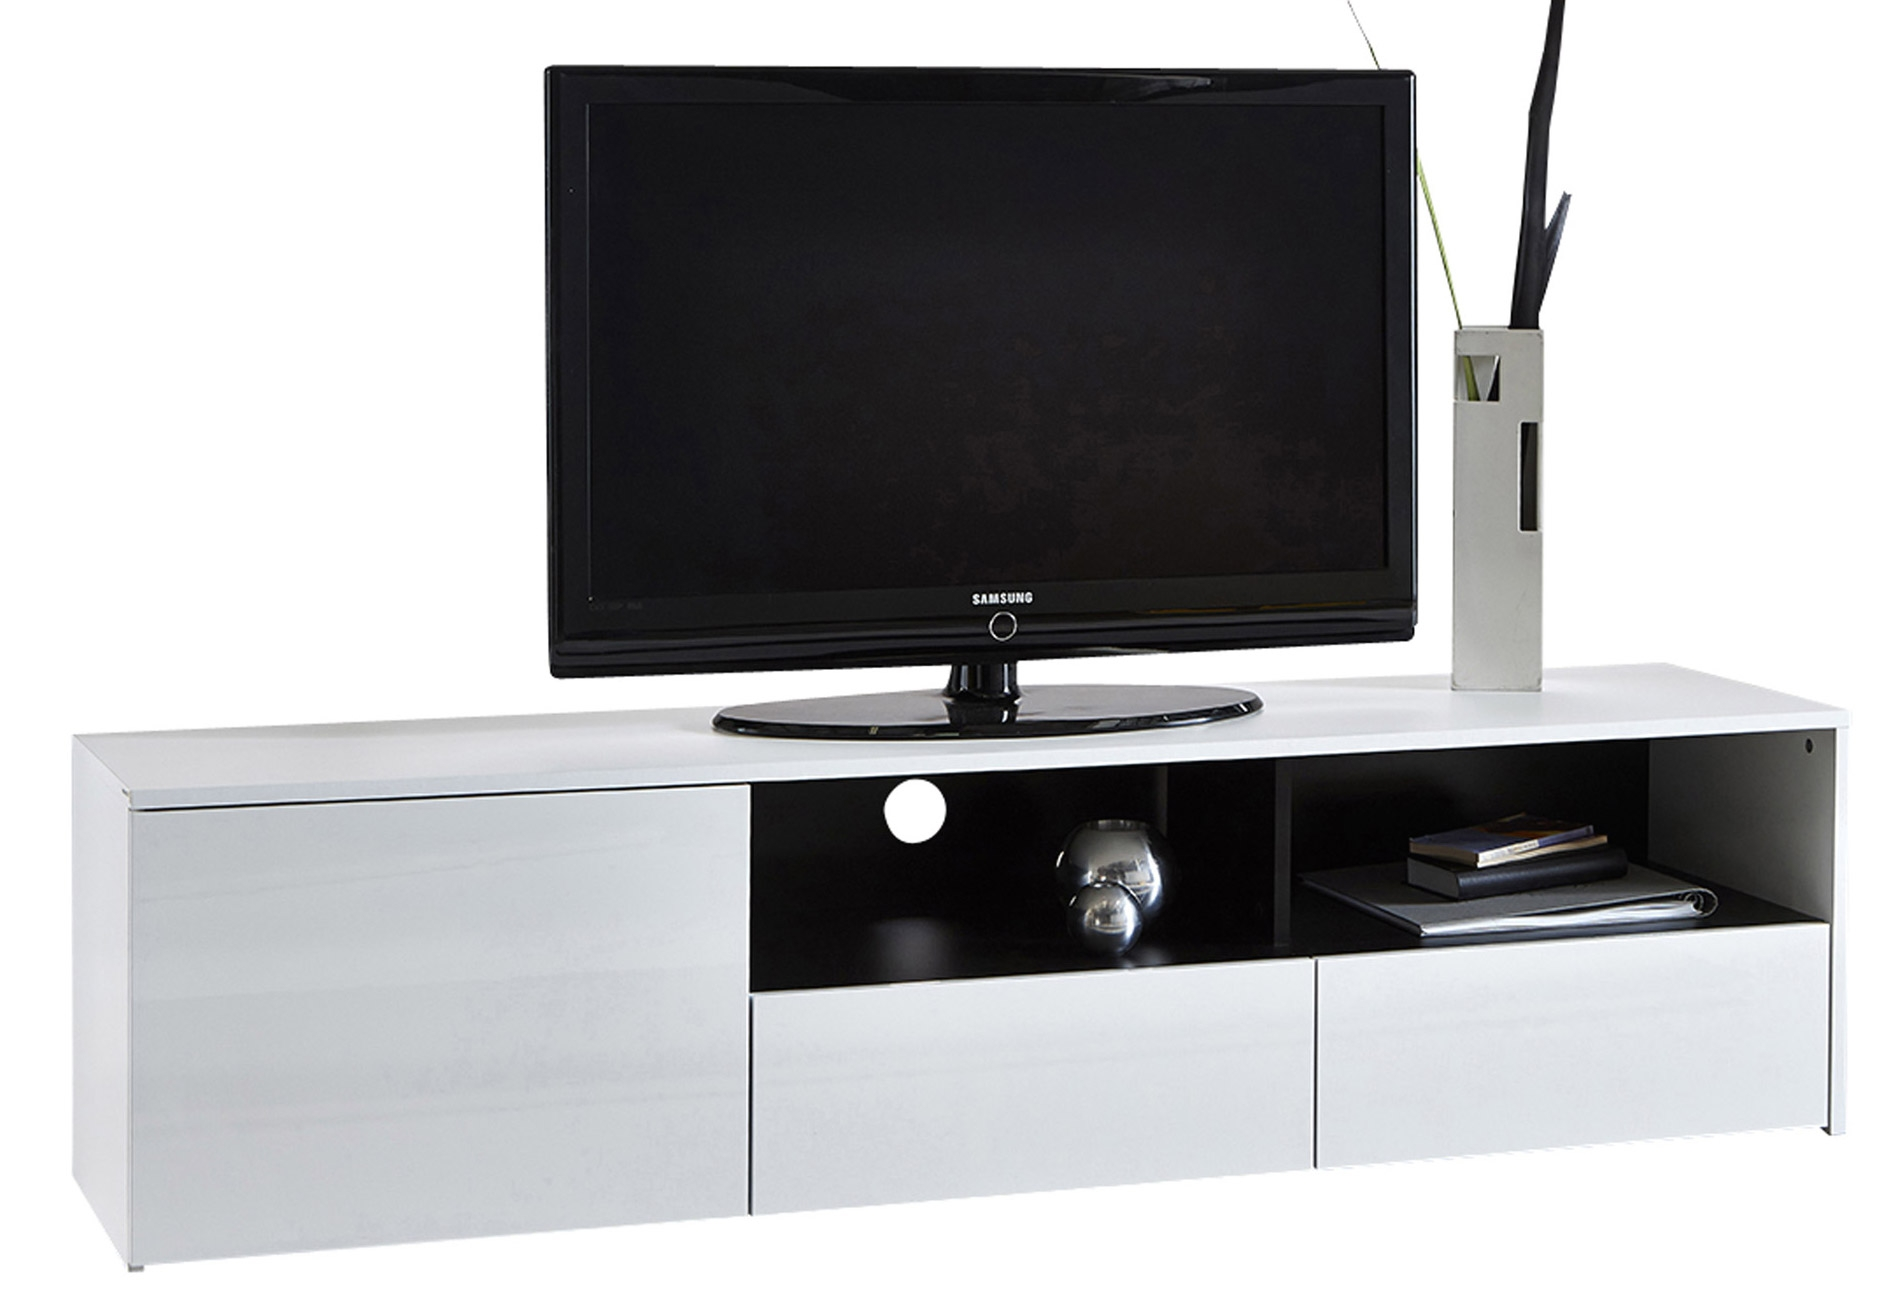 Banc TV Blanc brillant Citia  LesTendancesfr -> Banc Tv Blanc